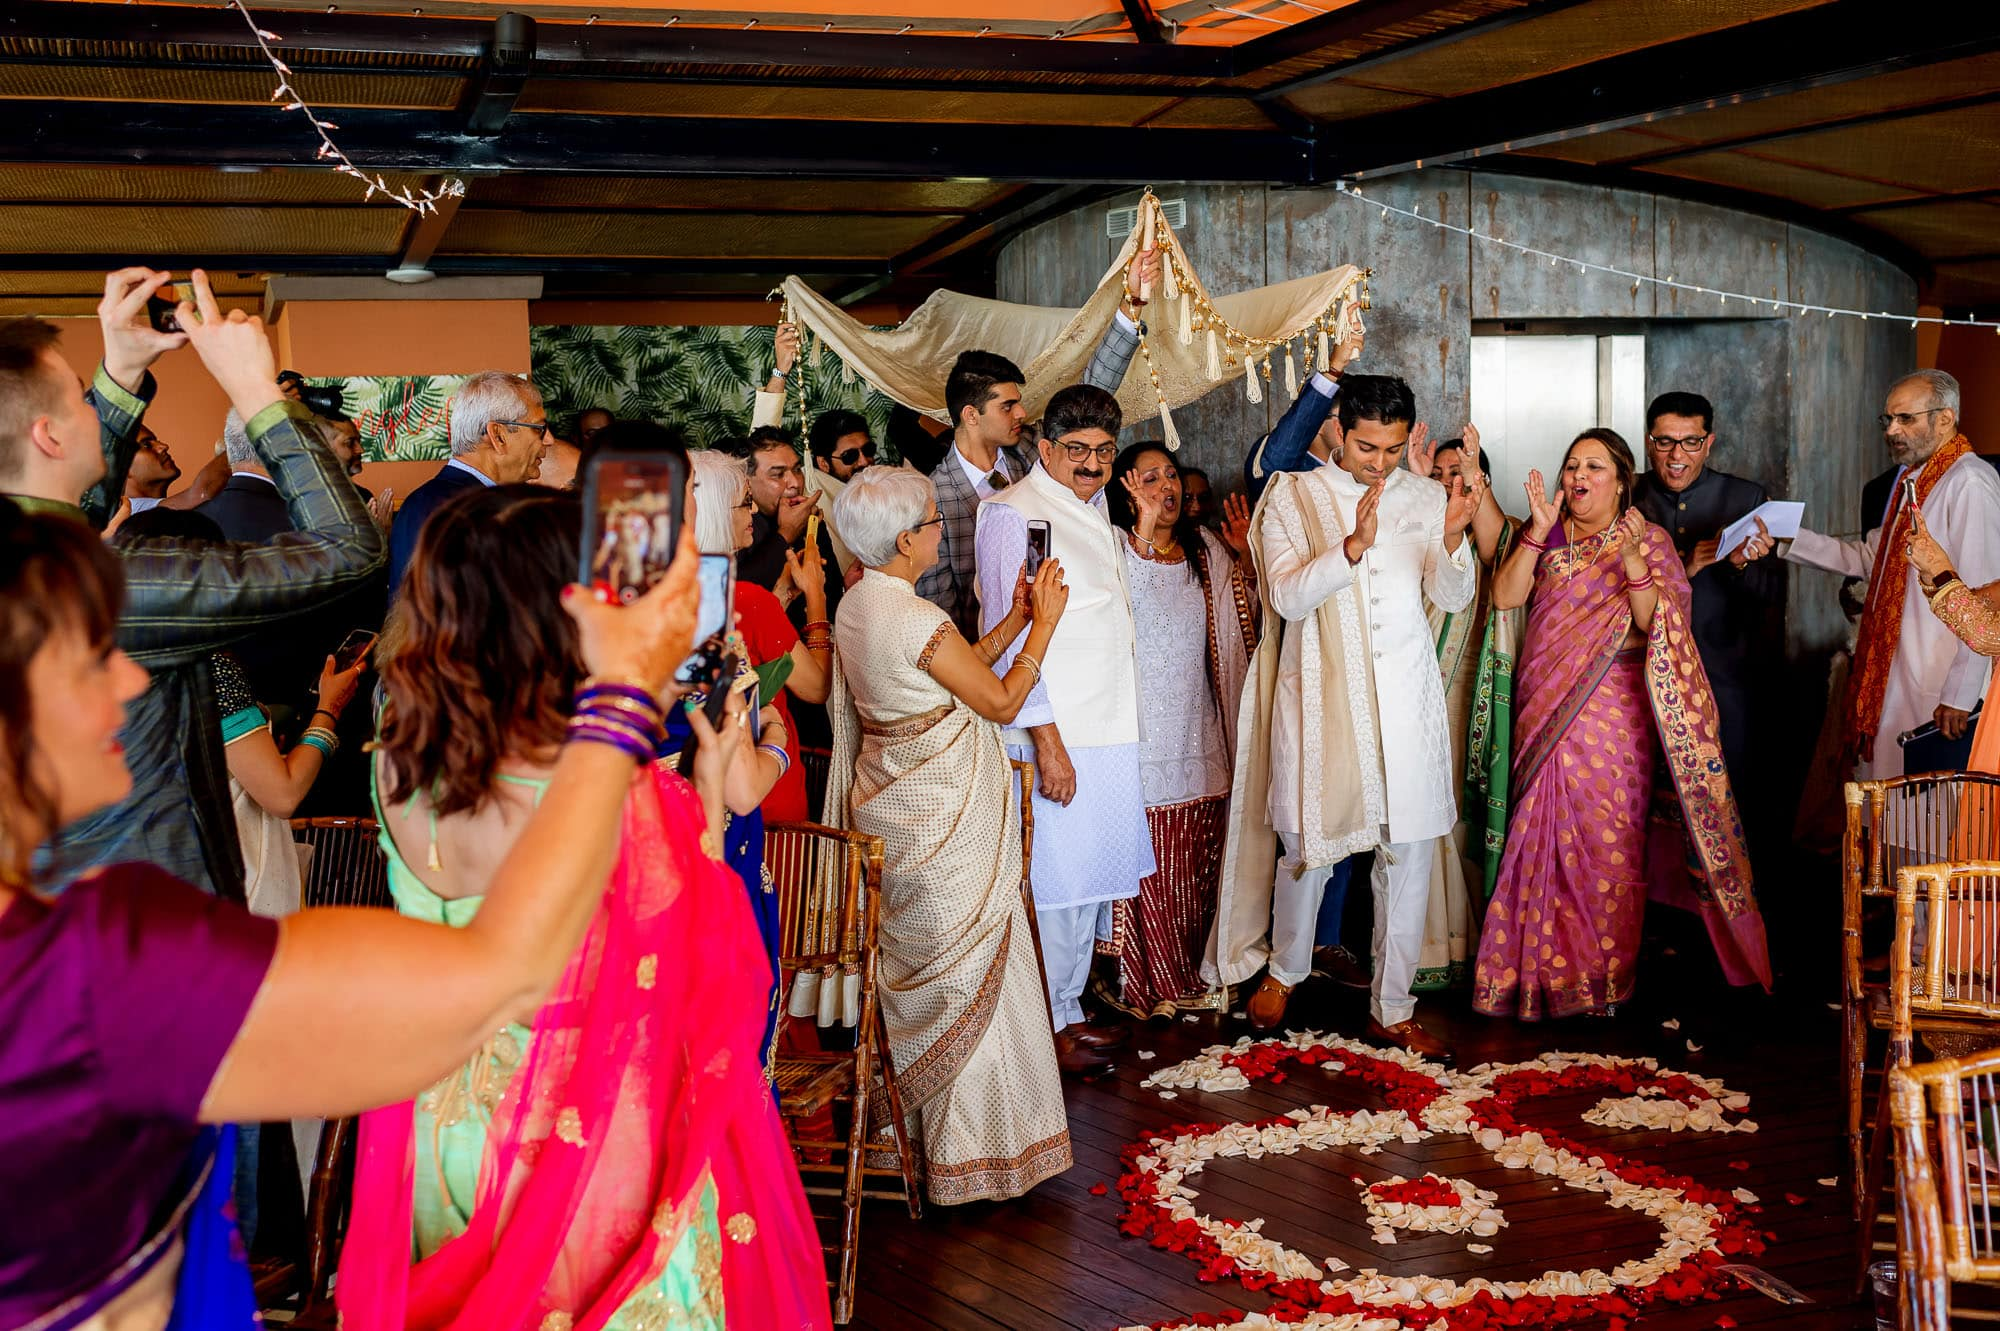 The groom enters amid much rejoicing